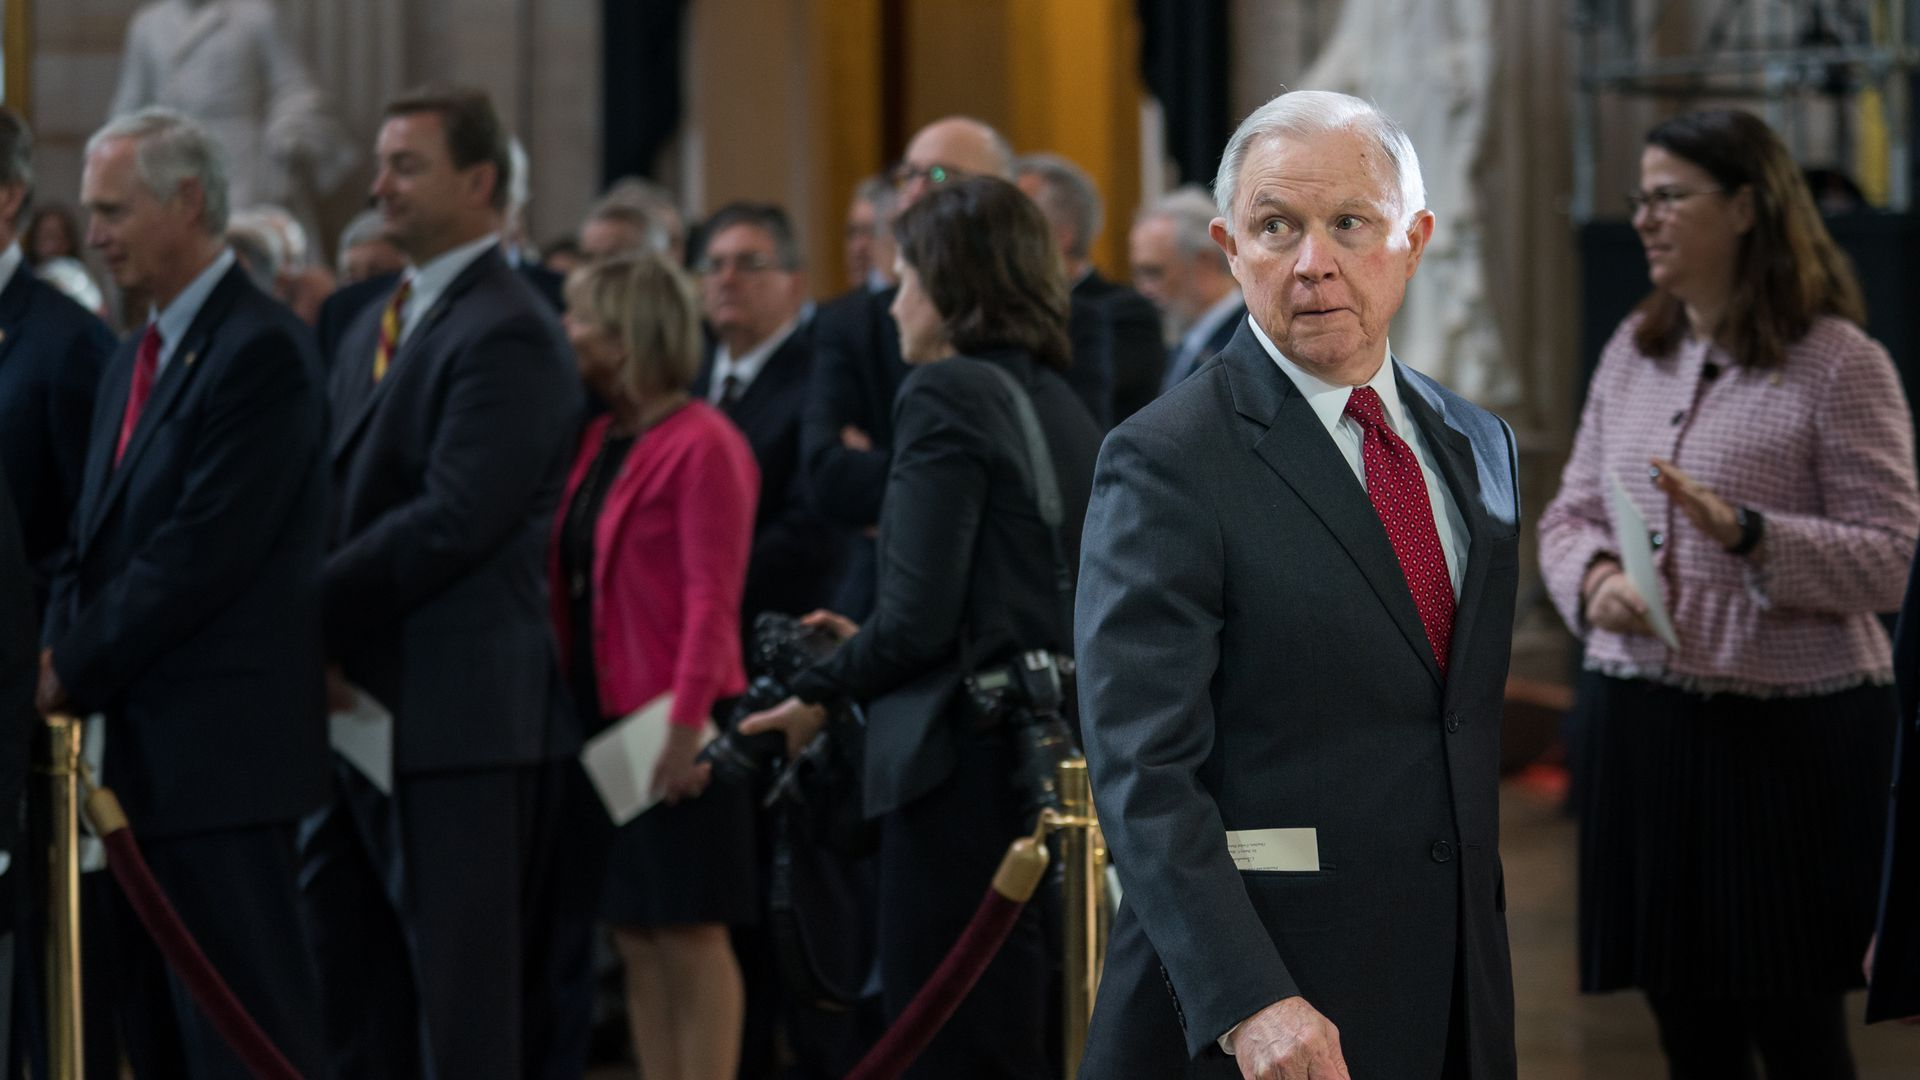 Jeff Sessions walking